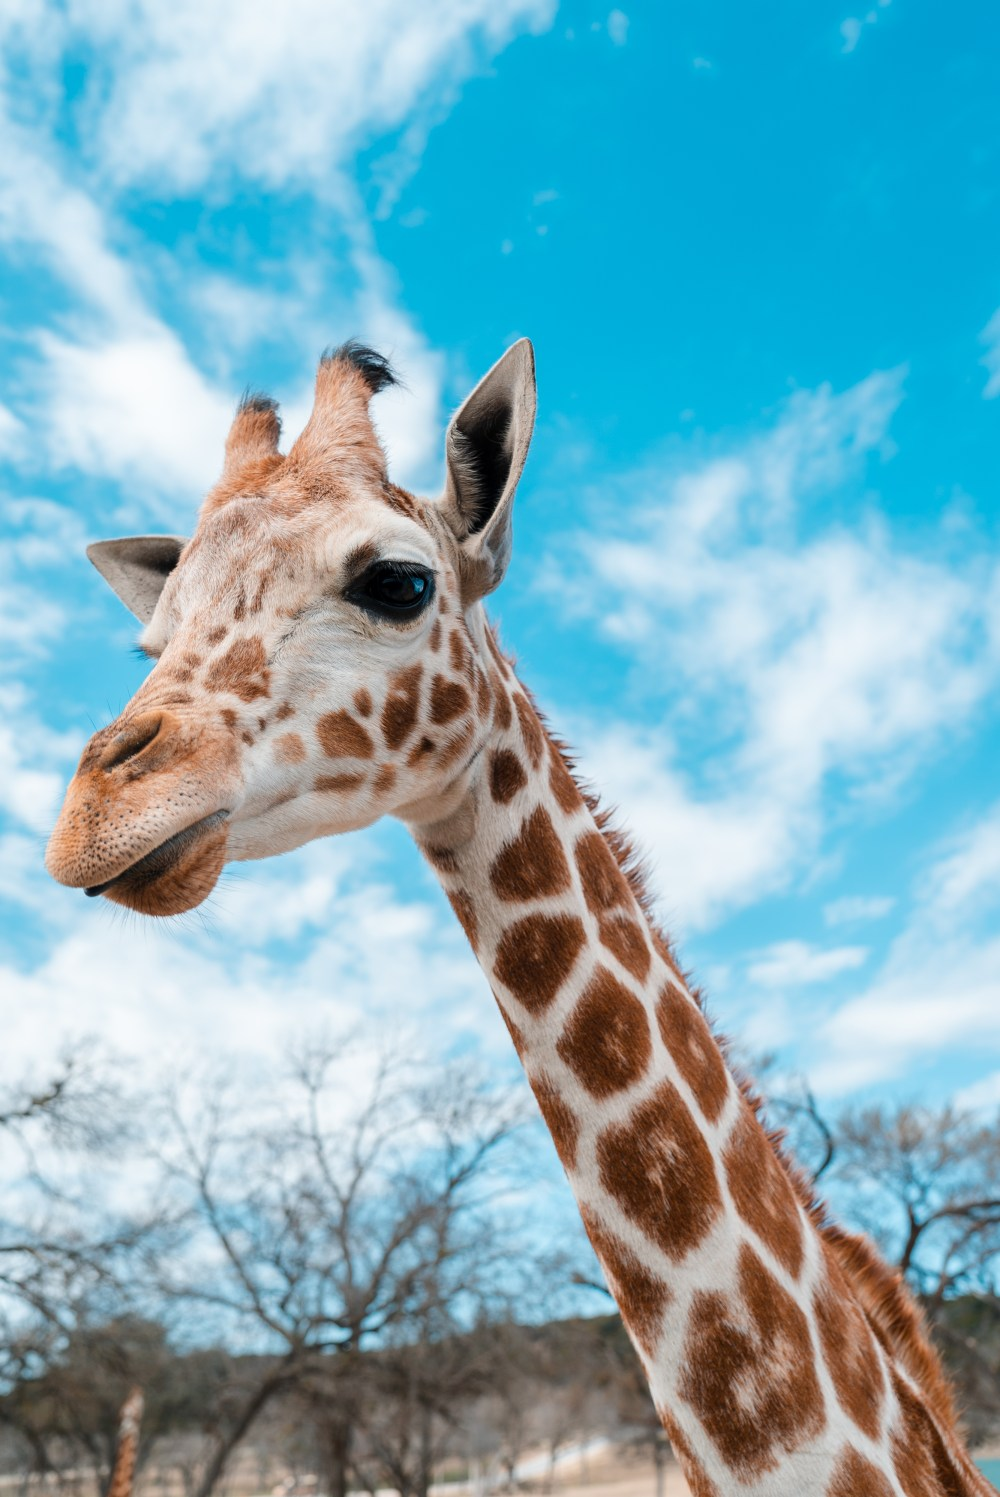 500 giraffe pictures hd